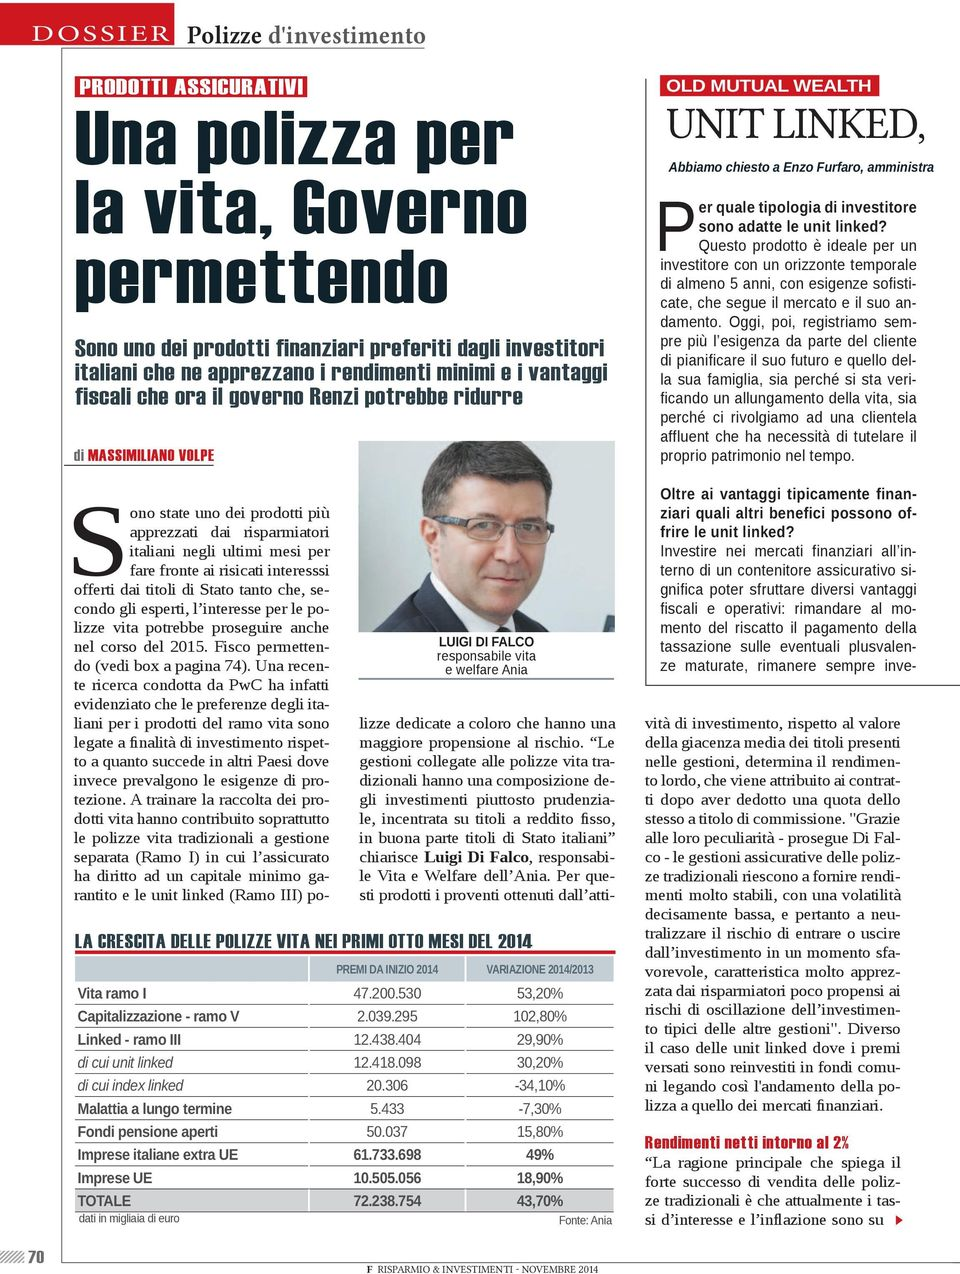 2014/2013 Vita ramo I 47.200.530 53,20% Capitalizzazione - ramo V 2.039.295 102,80% Linked - ramo III 12.438.404 29,90% di cui unit linked 12.418.098 30,20% di cui index linked 20.